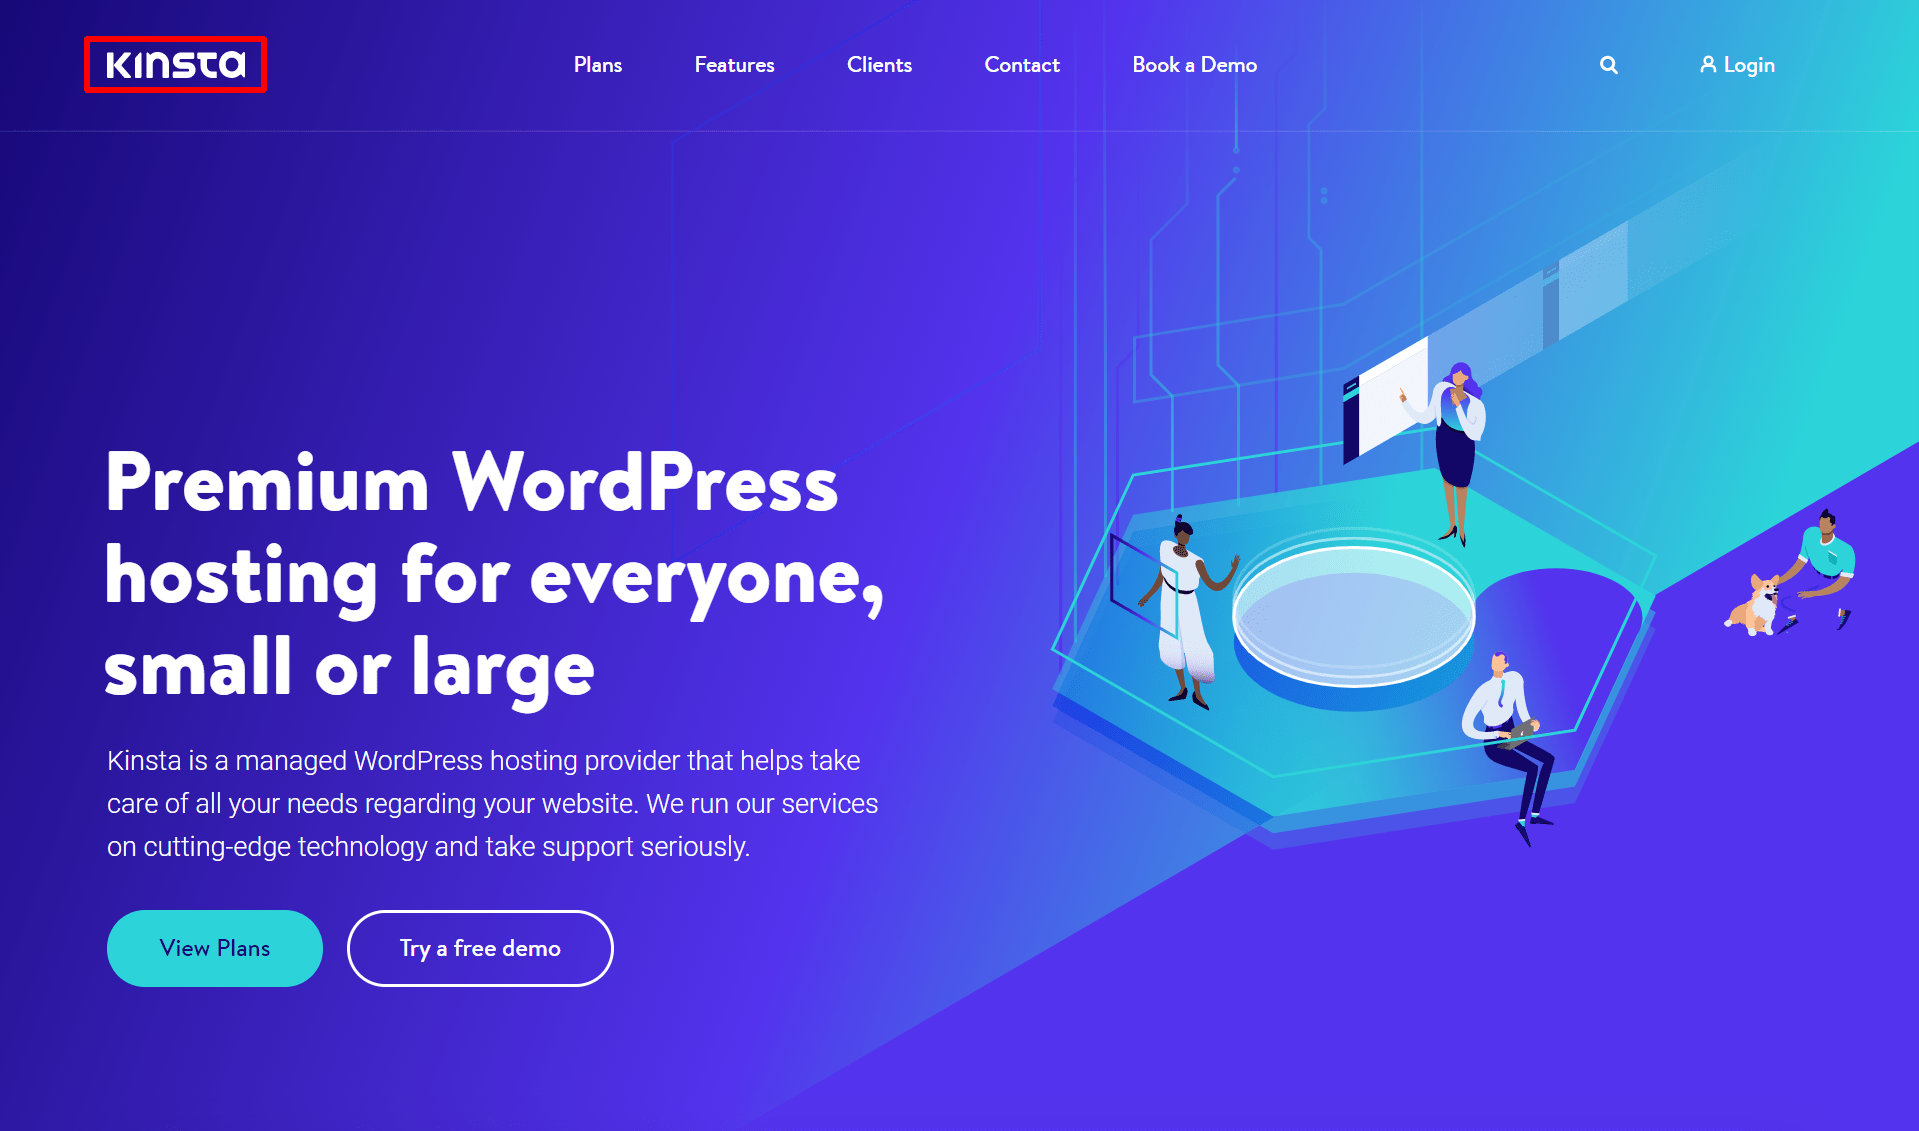 Kinsta-Managed-WordPress-Hosting-for-All-Large-or-Small